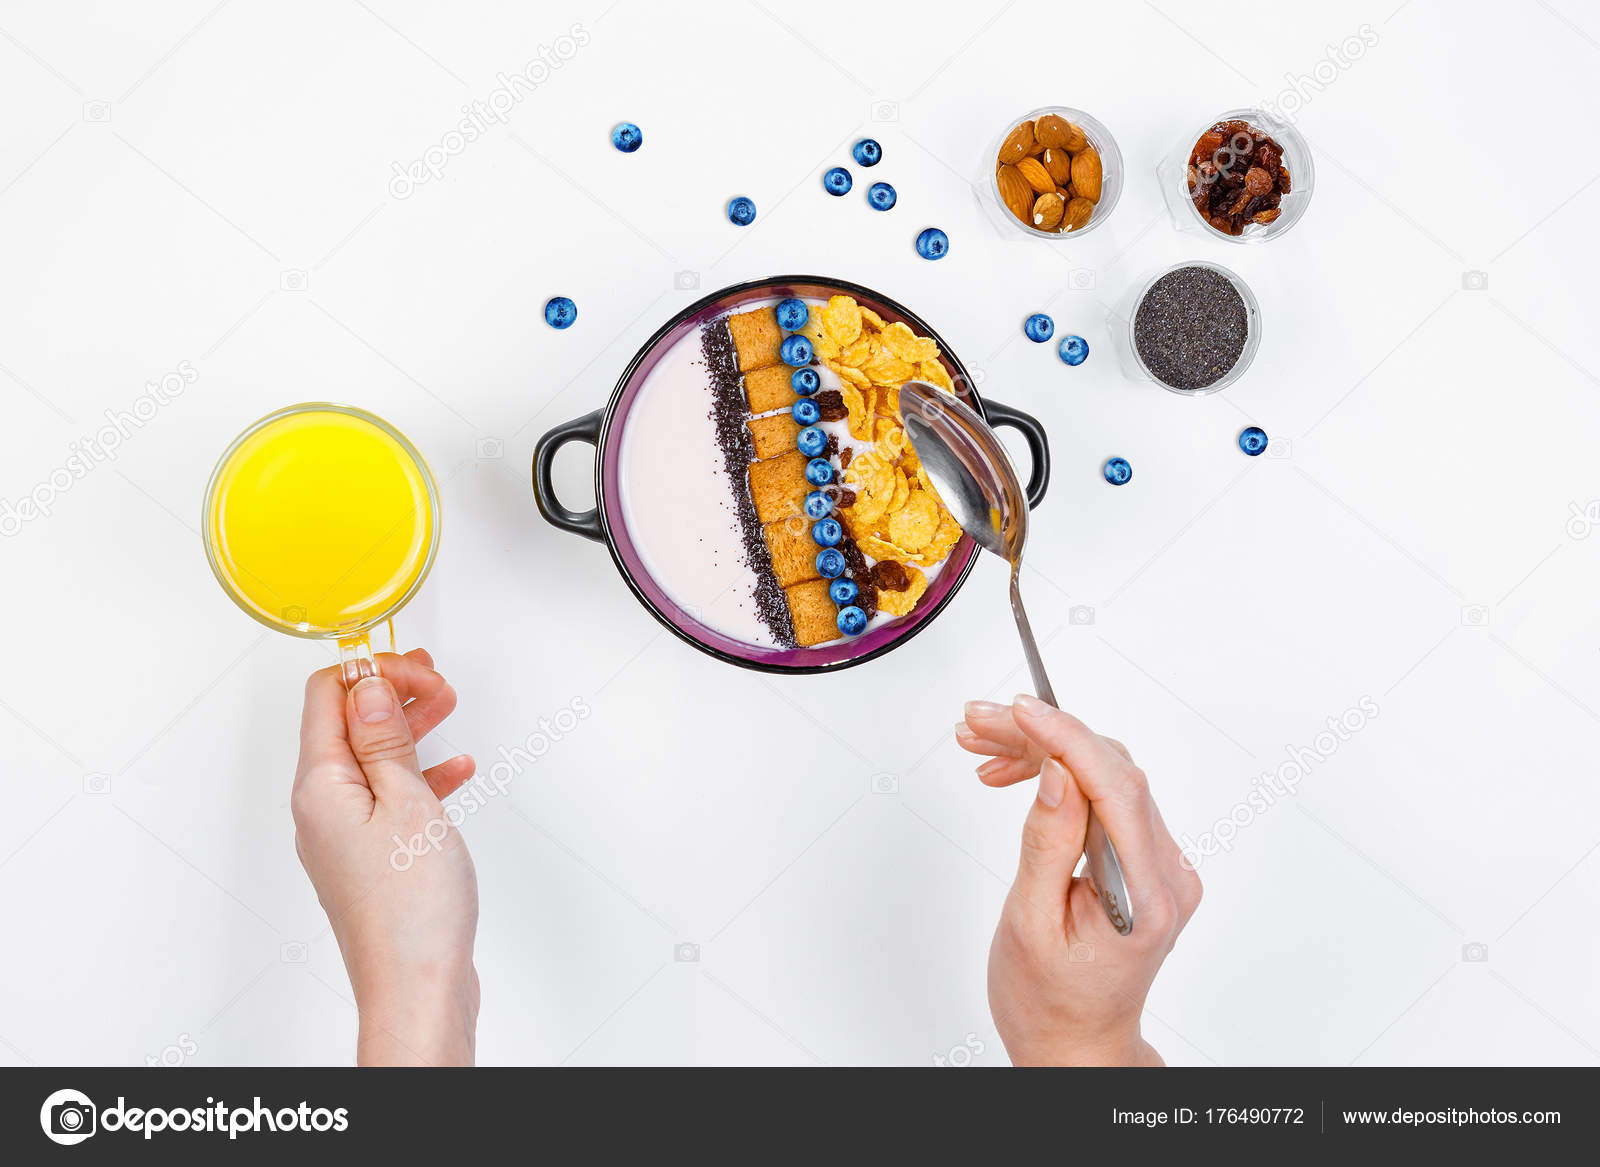 ... a spoon over a bowl with homemade yogurt and cornflakes, and fresh  blueberries, a glass of orange juice on a white background, top view, flat  lay.